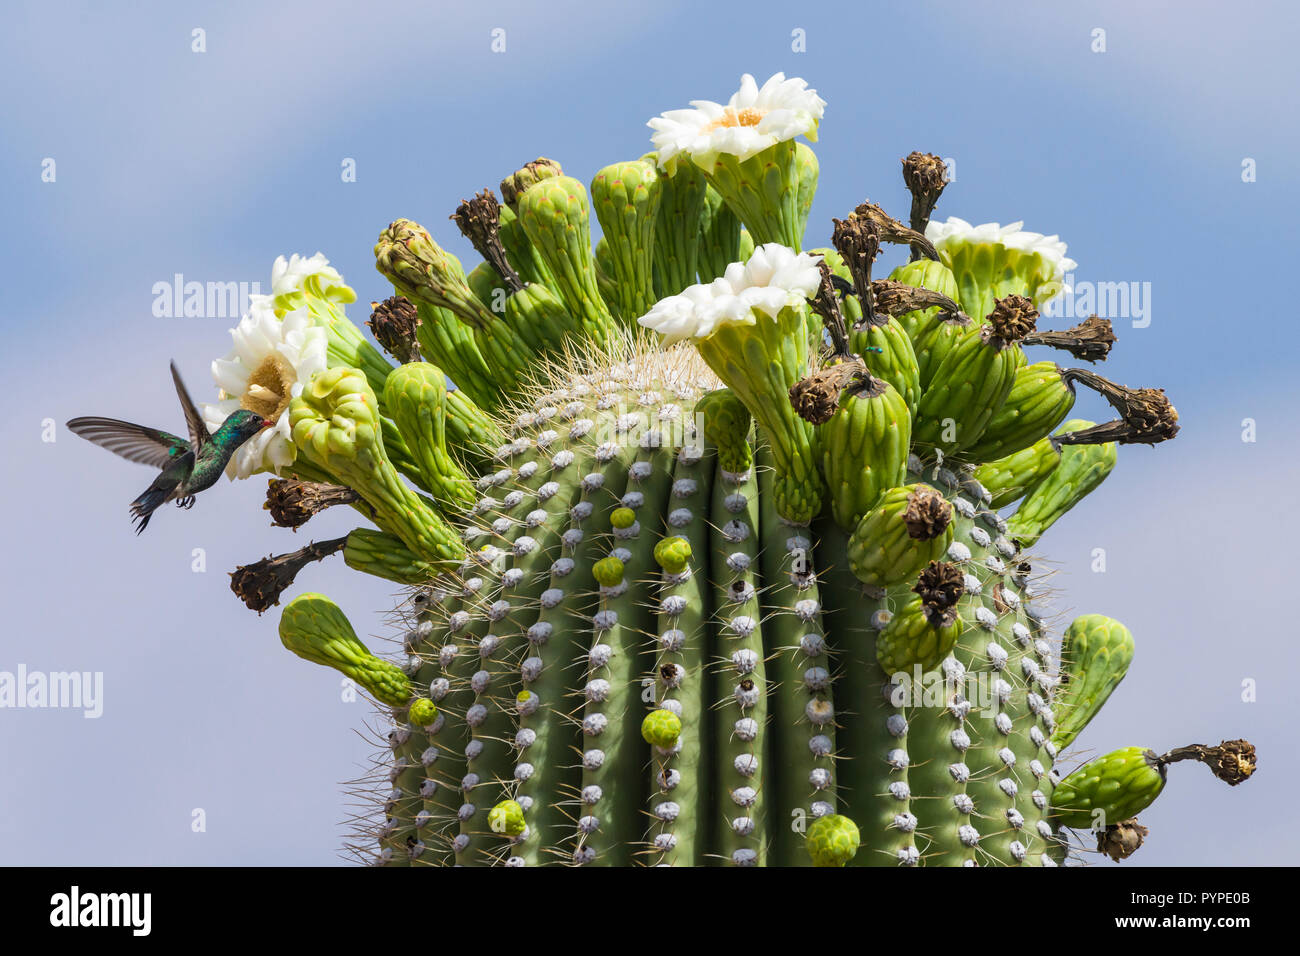 A Broad-billed Hummingbird (Cynanthus latirostris) feeding on nectar from the flowers of the Saguaro (Carnegiea gigantea). Tucson - Stock Image